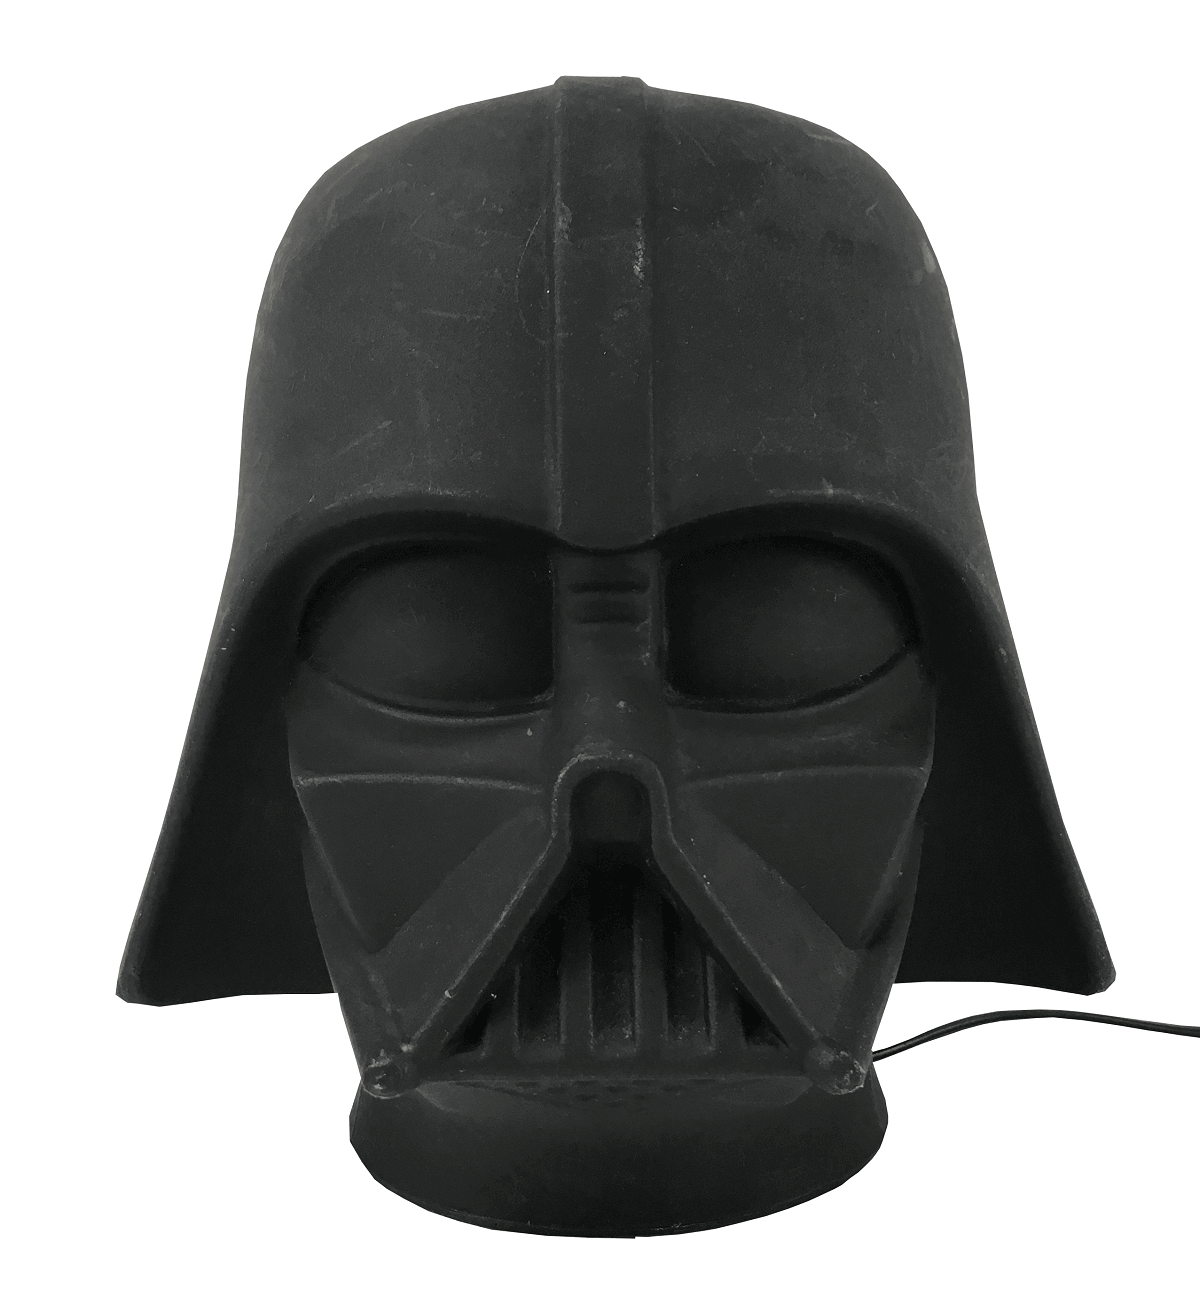 Luminaria Star Wars Darth Vader Usada